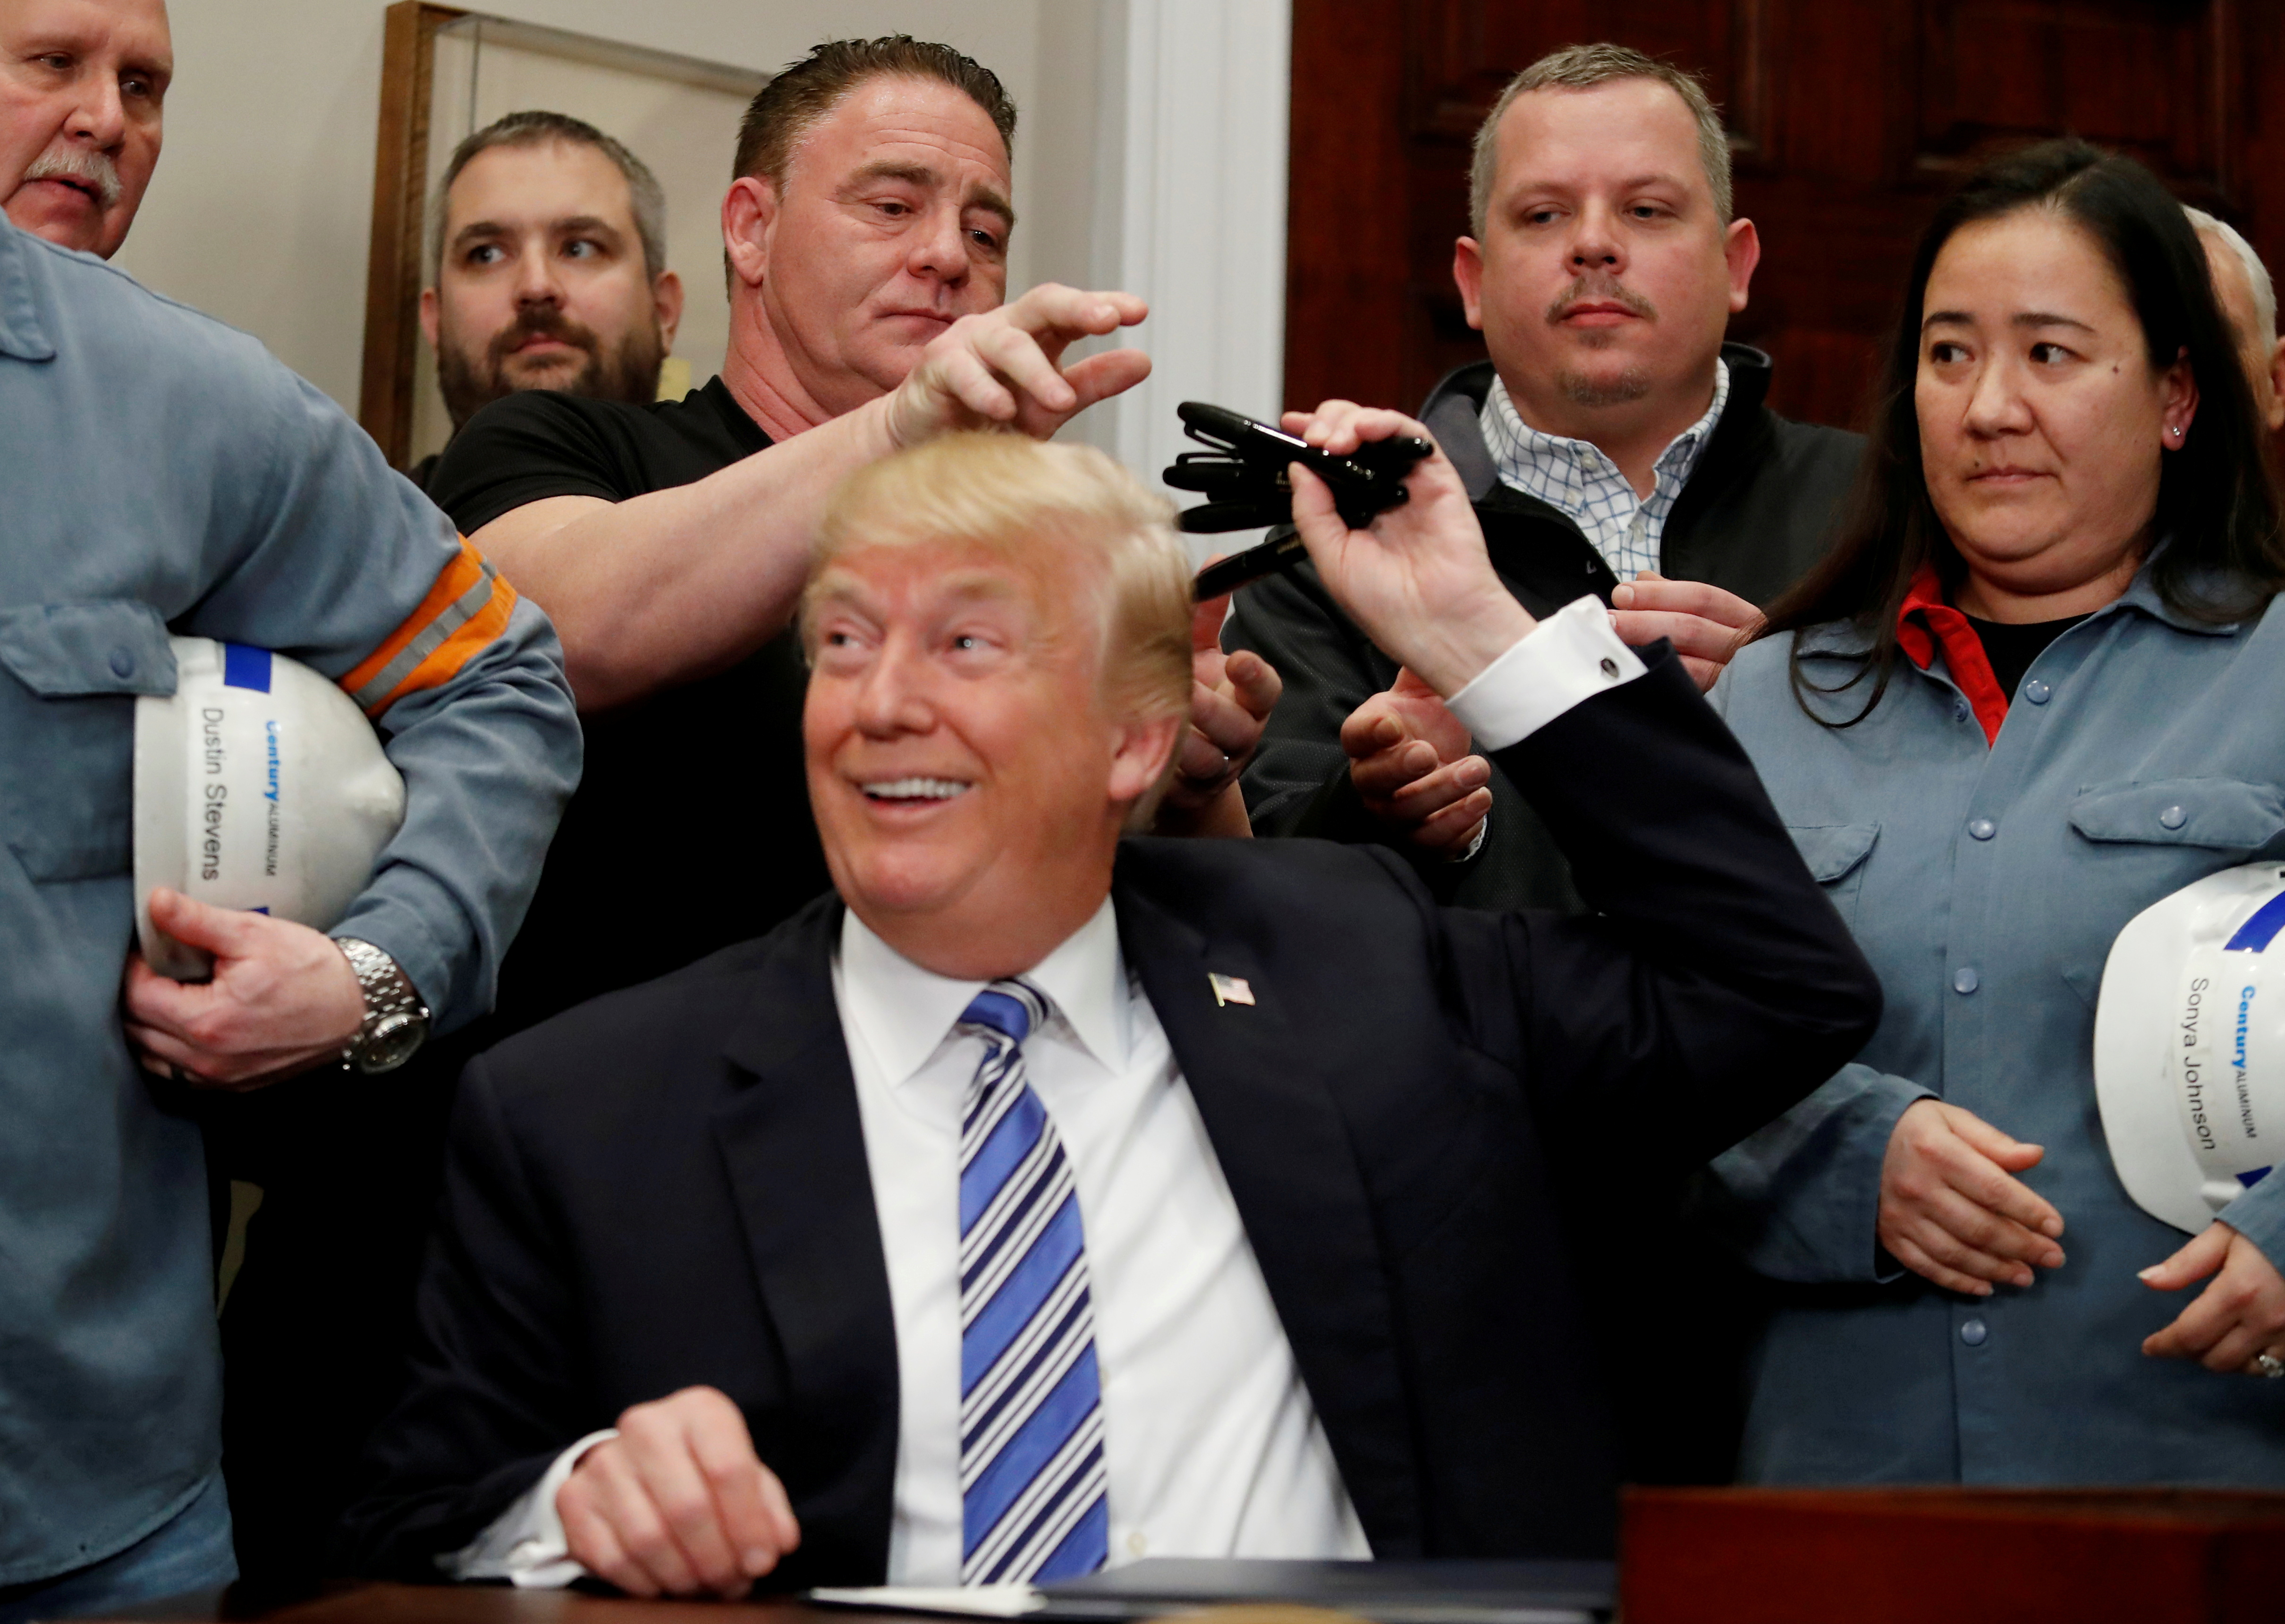 U.S. President Donald Trump gives out pens he used to sign presidential proclamations placing tariffs on steel and aluminum imports to workers from the steel and aluminum industries at the White House in Washington, U.S. March 8, 2018. REUTERS/Leah Millis